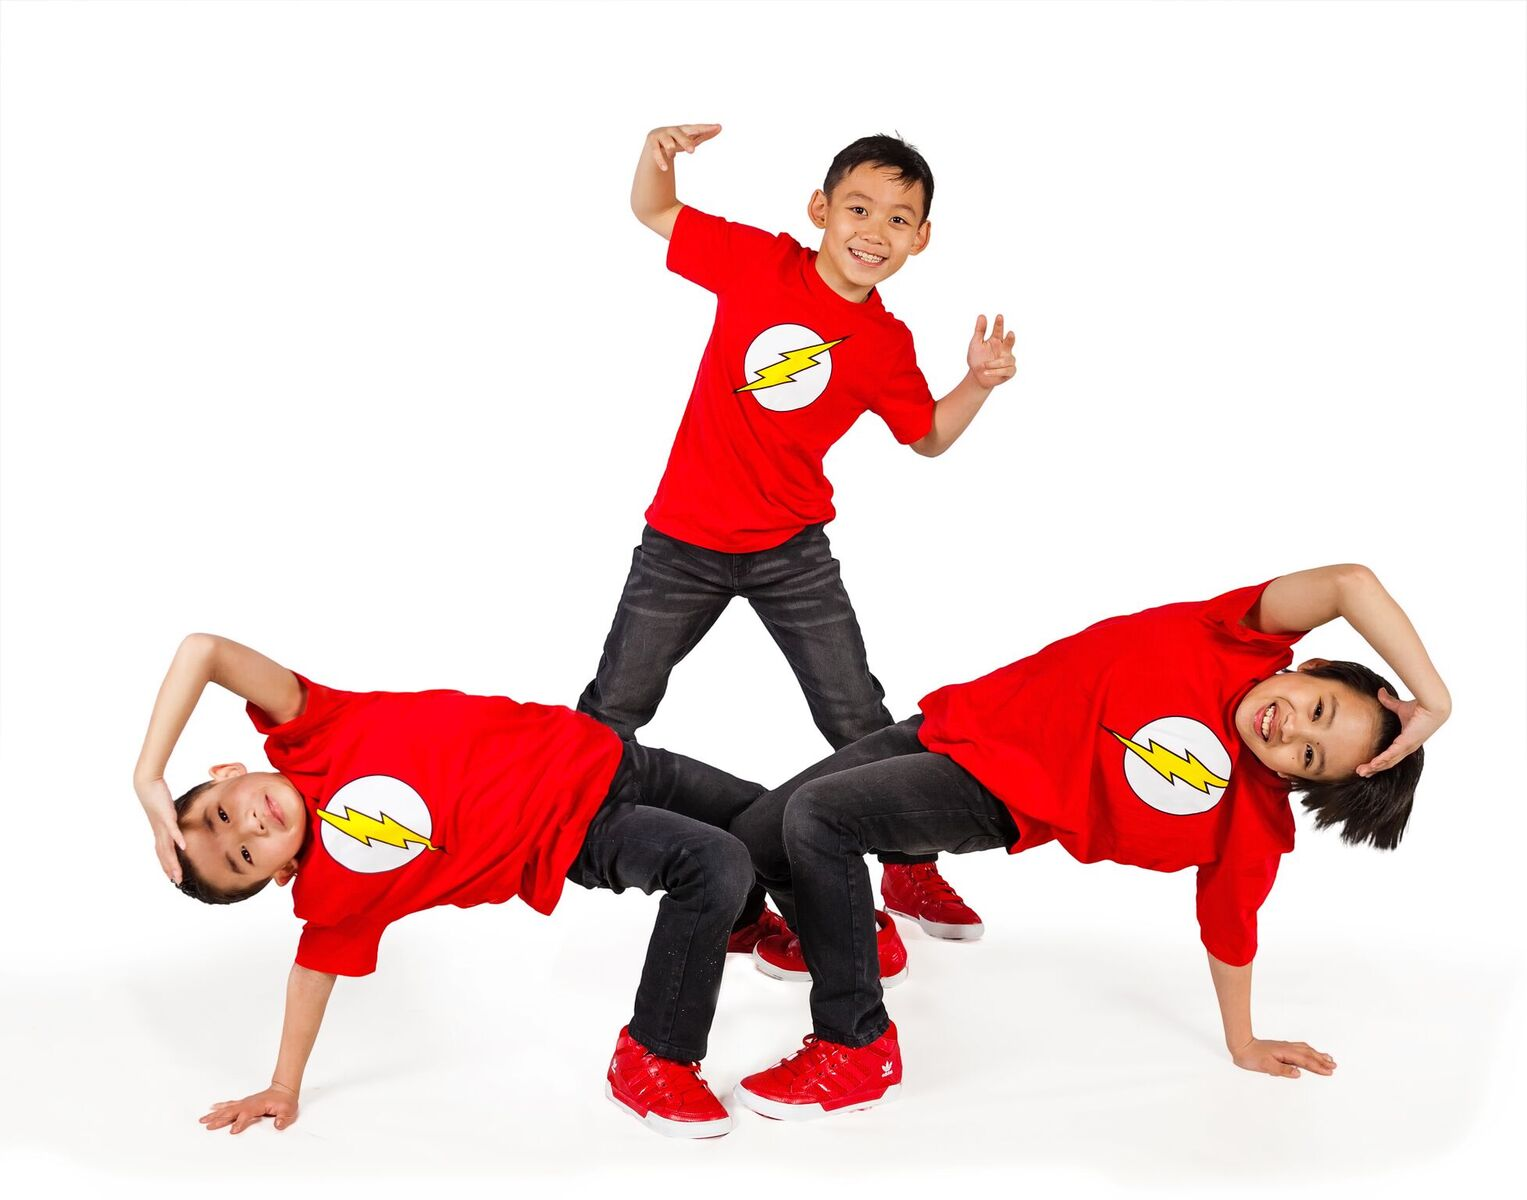 Young boys doing breakdance